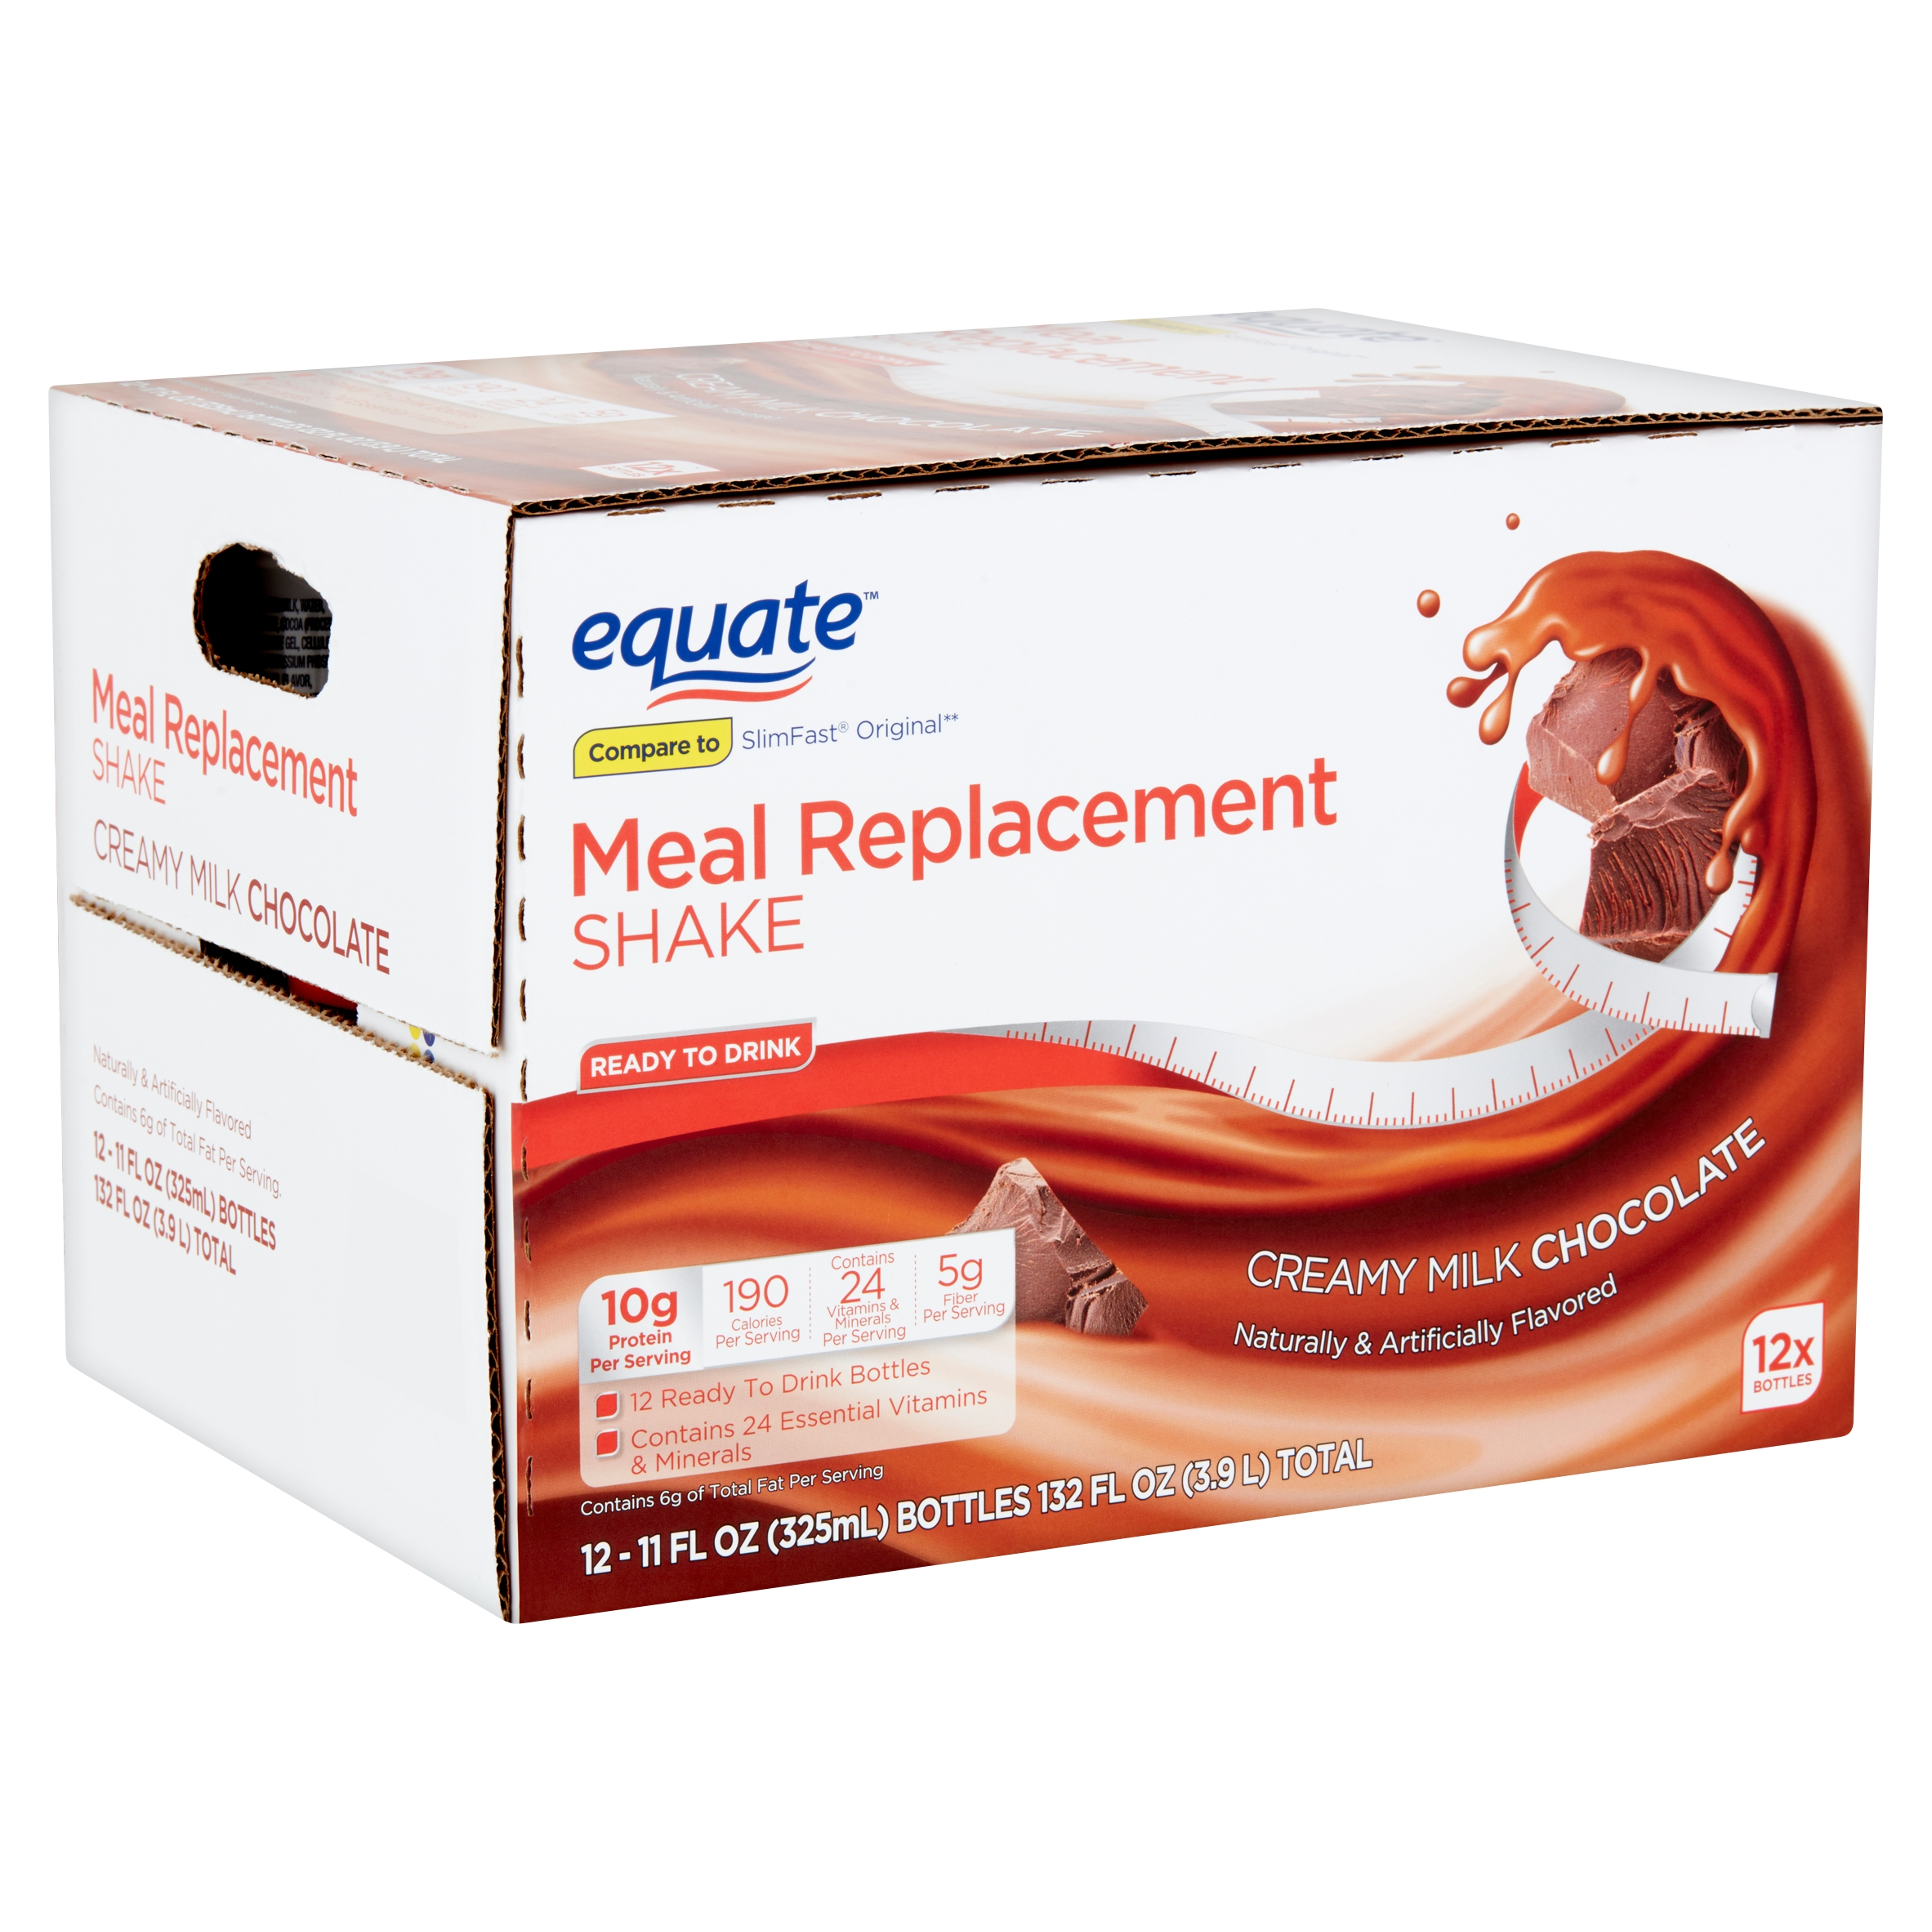 Equate Creamy Milk Chocolate Meal Replacement Shake, 11 fl oz, 12 count